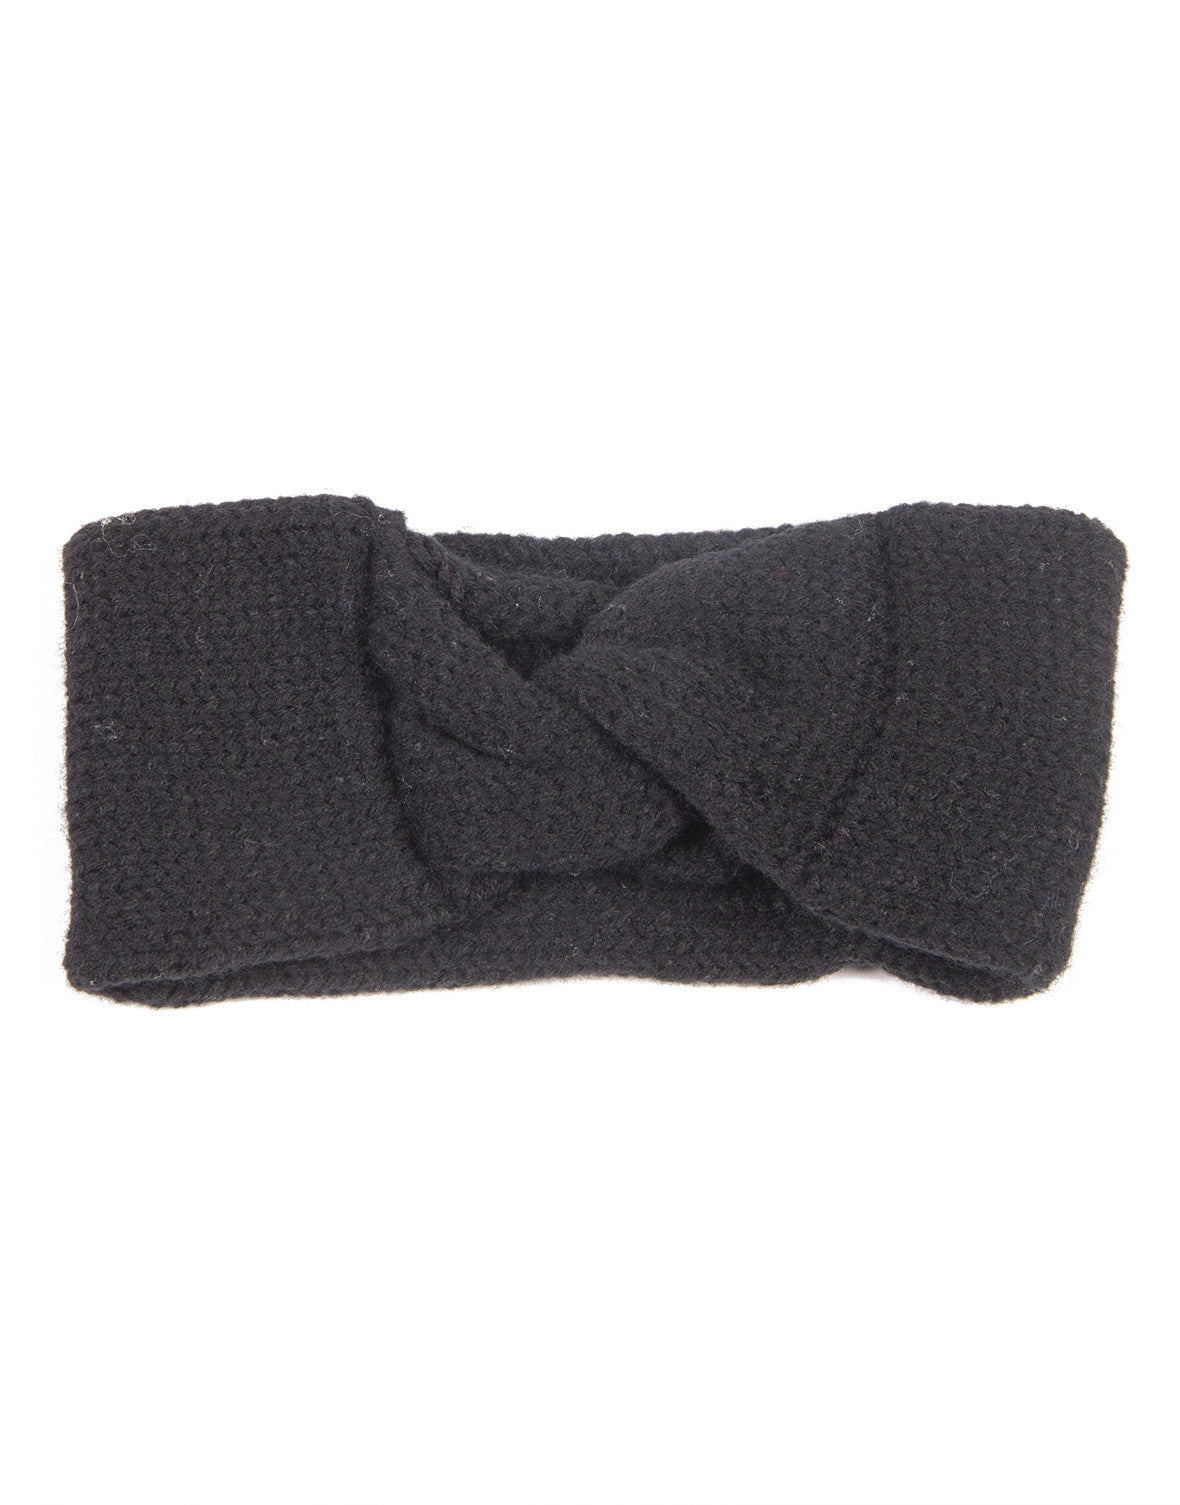 Knotted Knit Headwrap - Black - 2020AVE